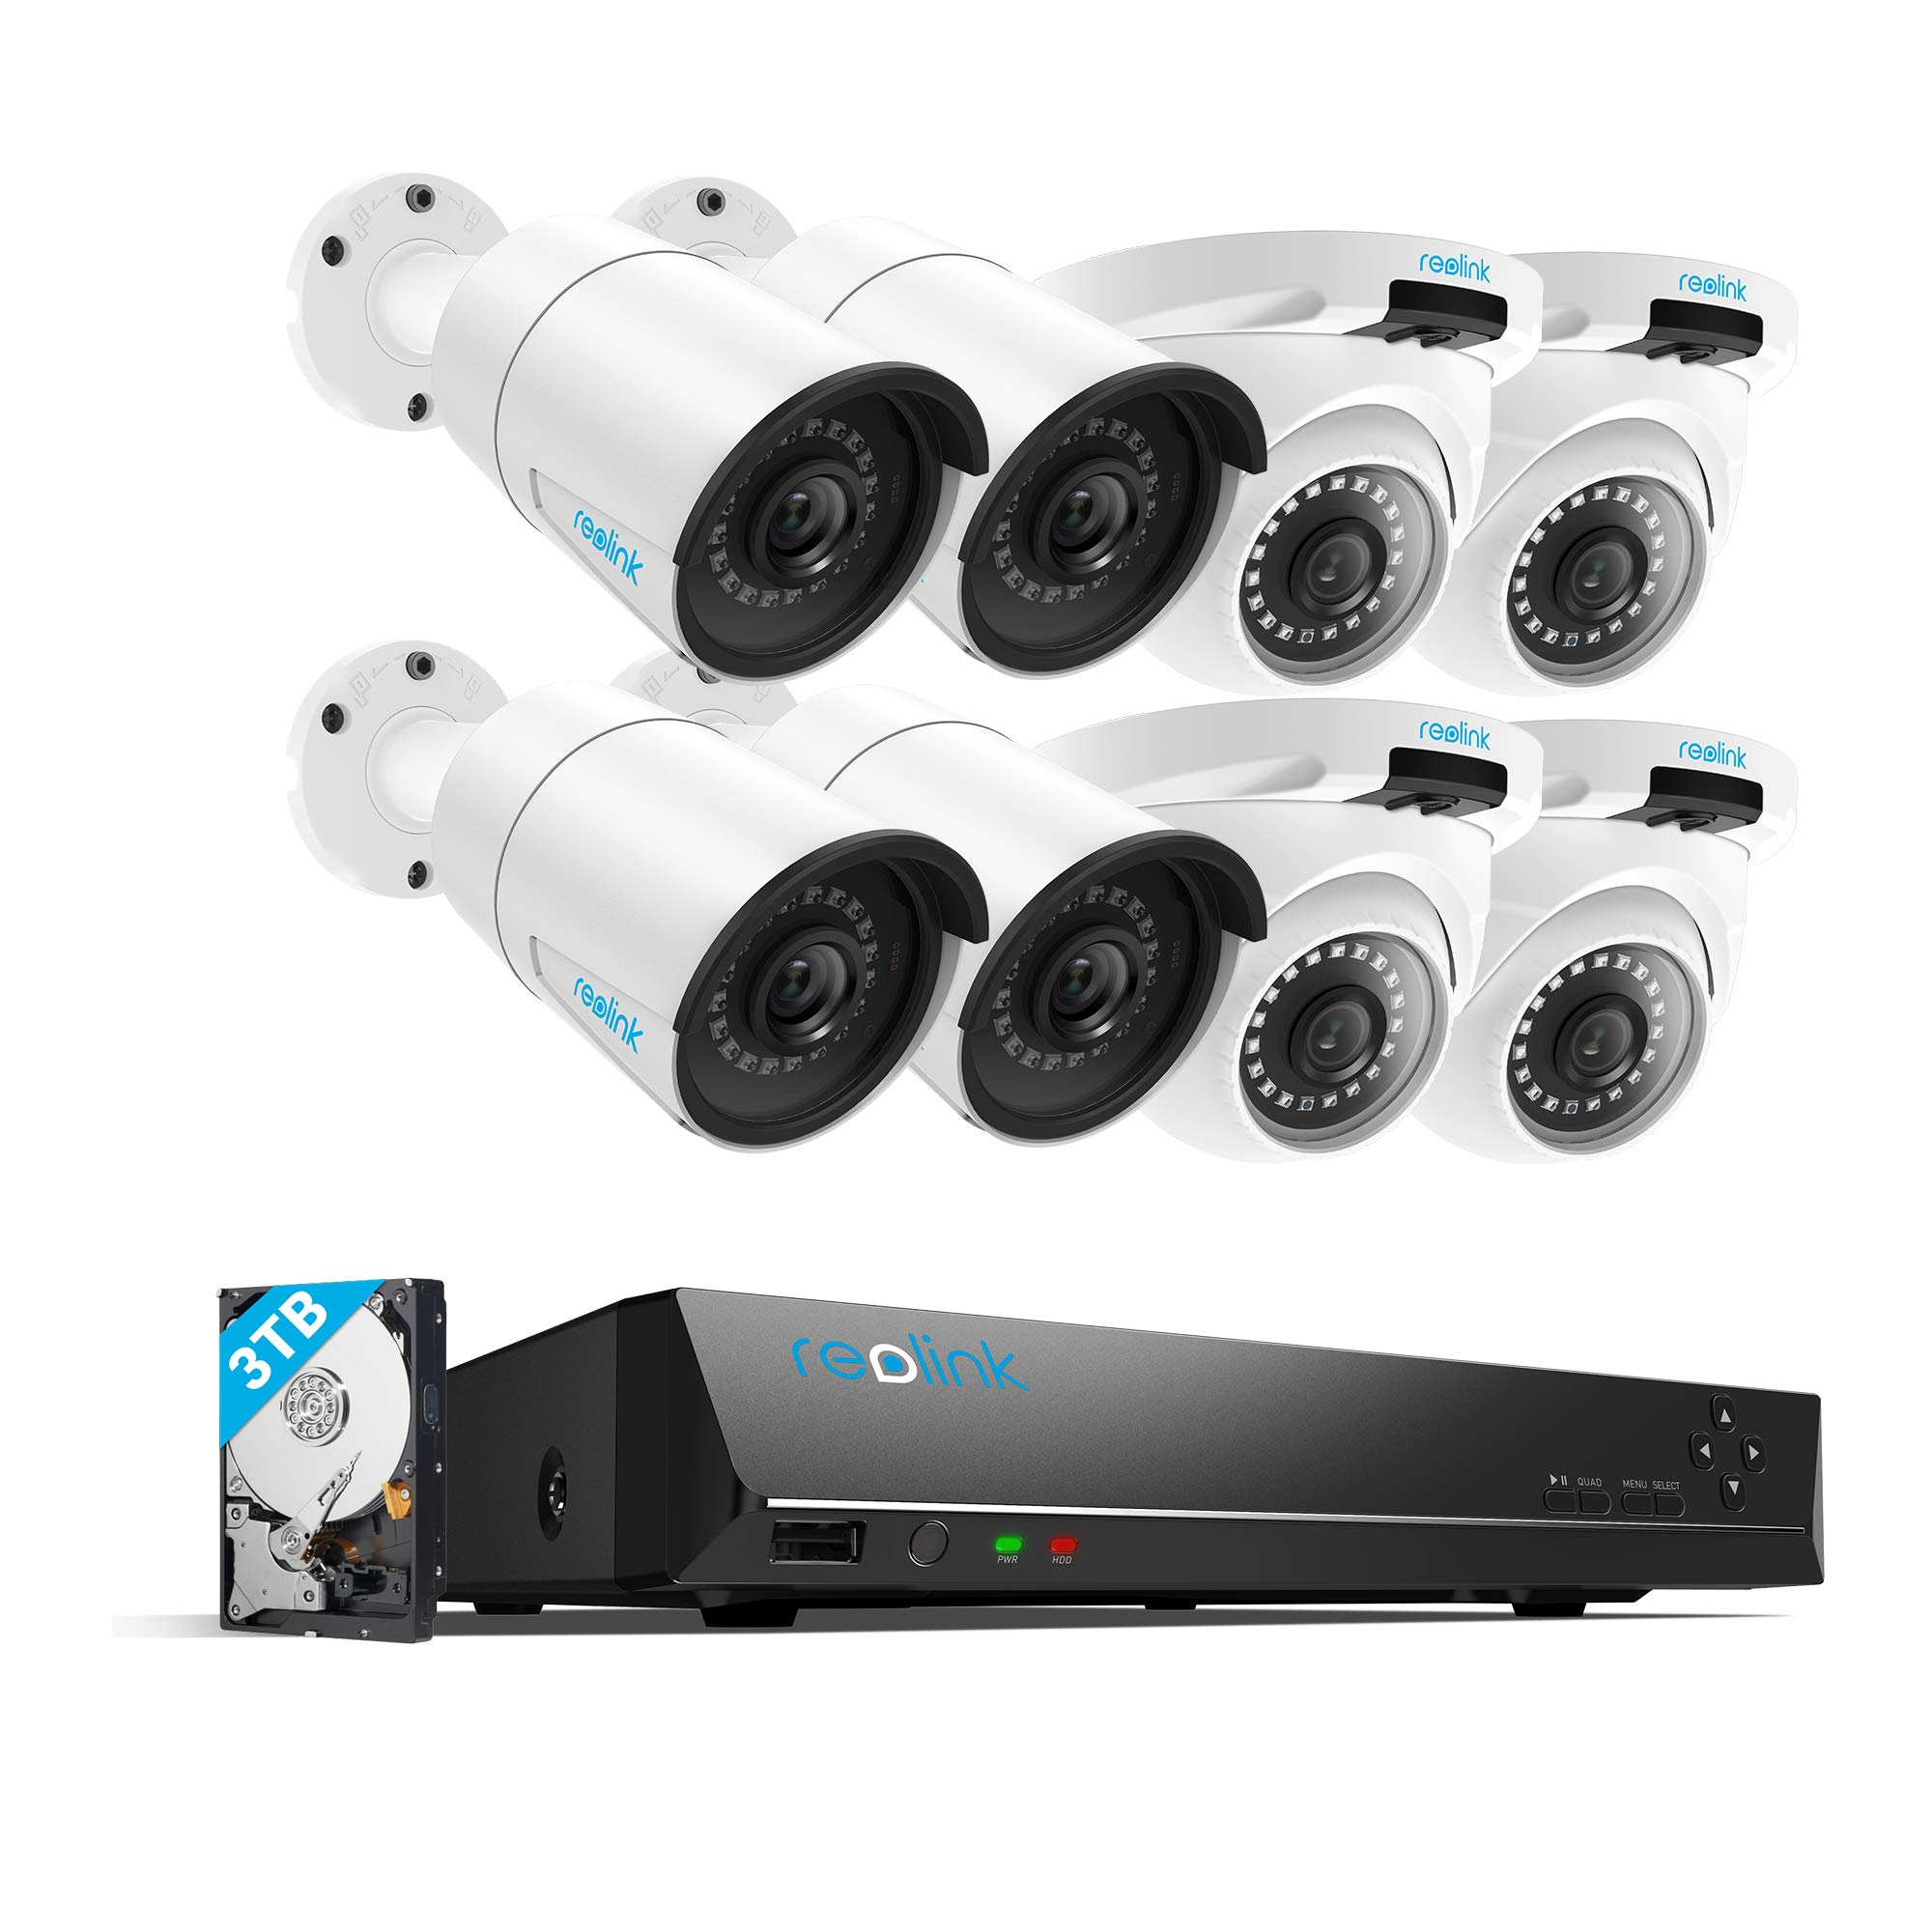 REOLINK 5MP 16CH IP Security NVR System, 4 Bullet and 4 Turret Outdoor 5MP POE Cameras with a 16-Channel 5MP NVR, 3TB HDD pre-Installed, RLK16-410B4D4-5MP by REOLINK